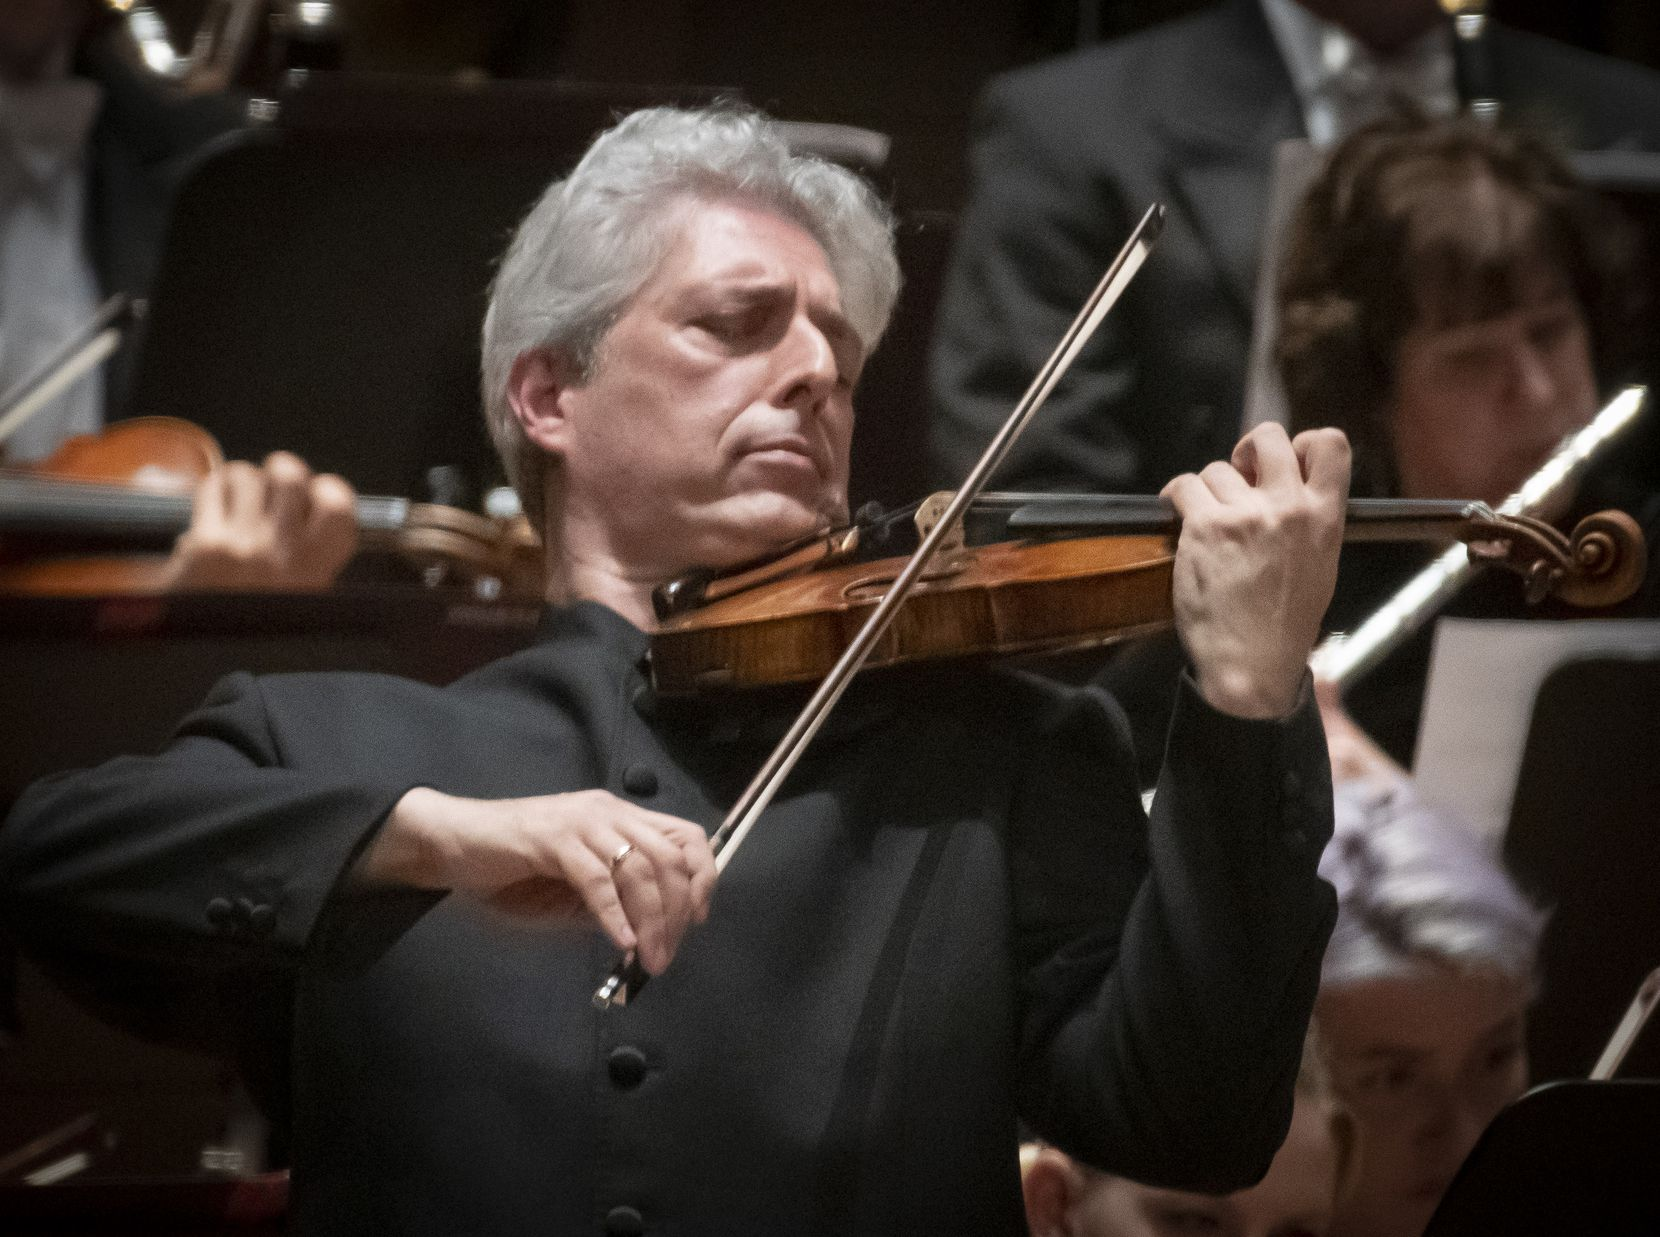 DSO Senior Principal Associate Concertmaster Gary Levinson performs the world premier of George Tsontakis' Violin Concerto No. 3 with guest conductor Robert Spano and the Dallas Symphony Orchestra at the Meyerson Symphony Center in Dallas, Texas on October 25, 2019.